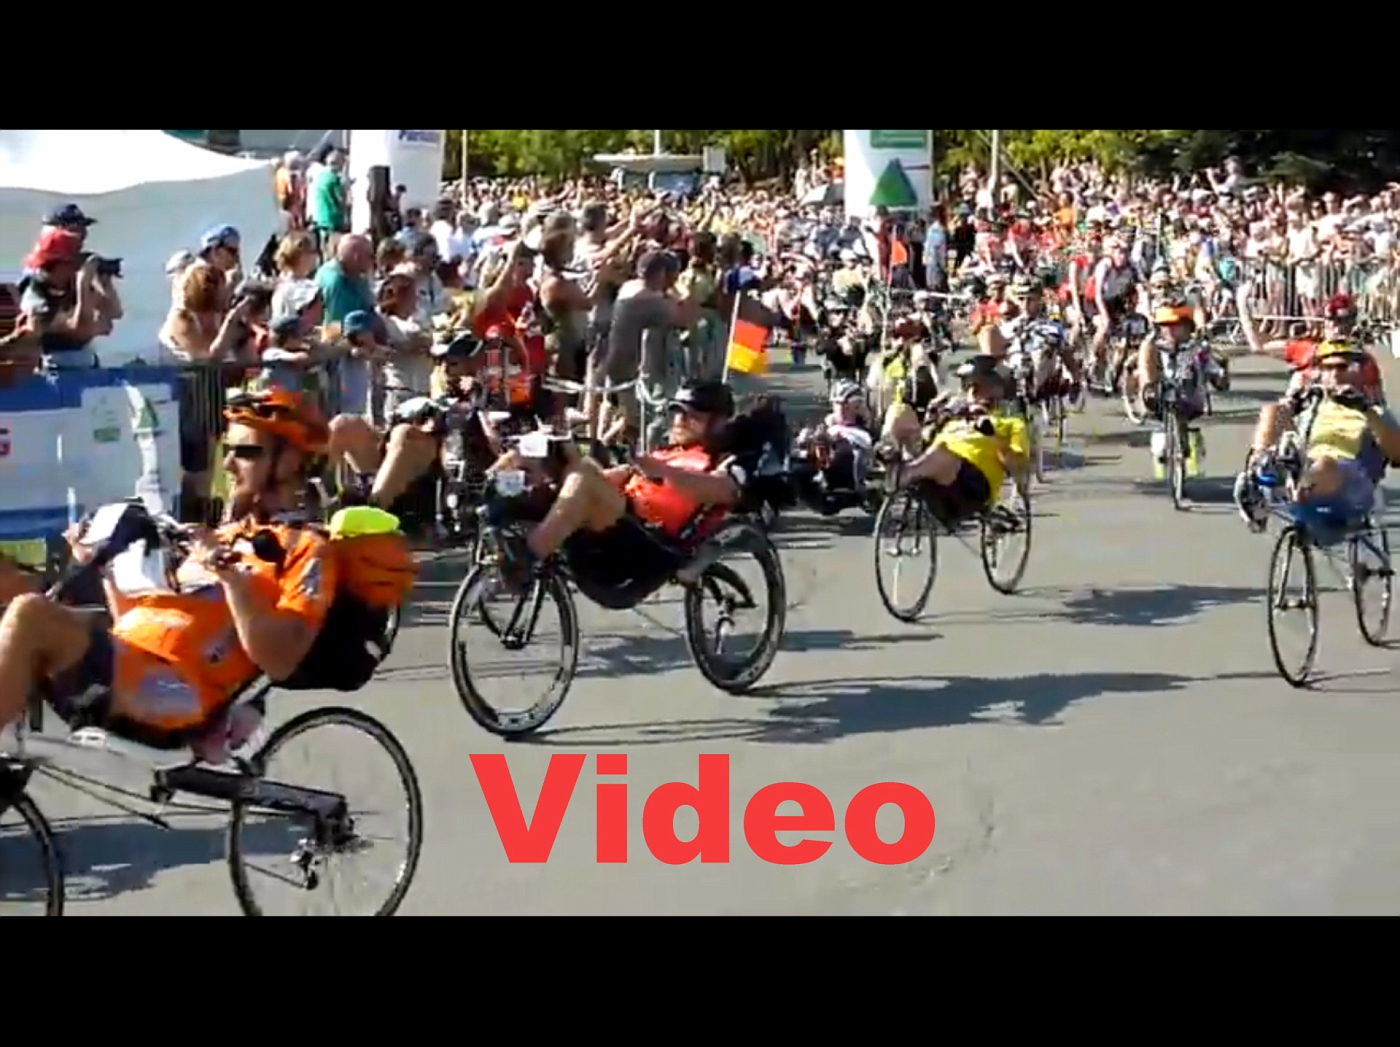 VIDEO: Manfred starts with the special bikes group